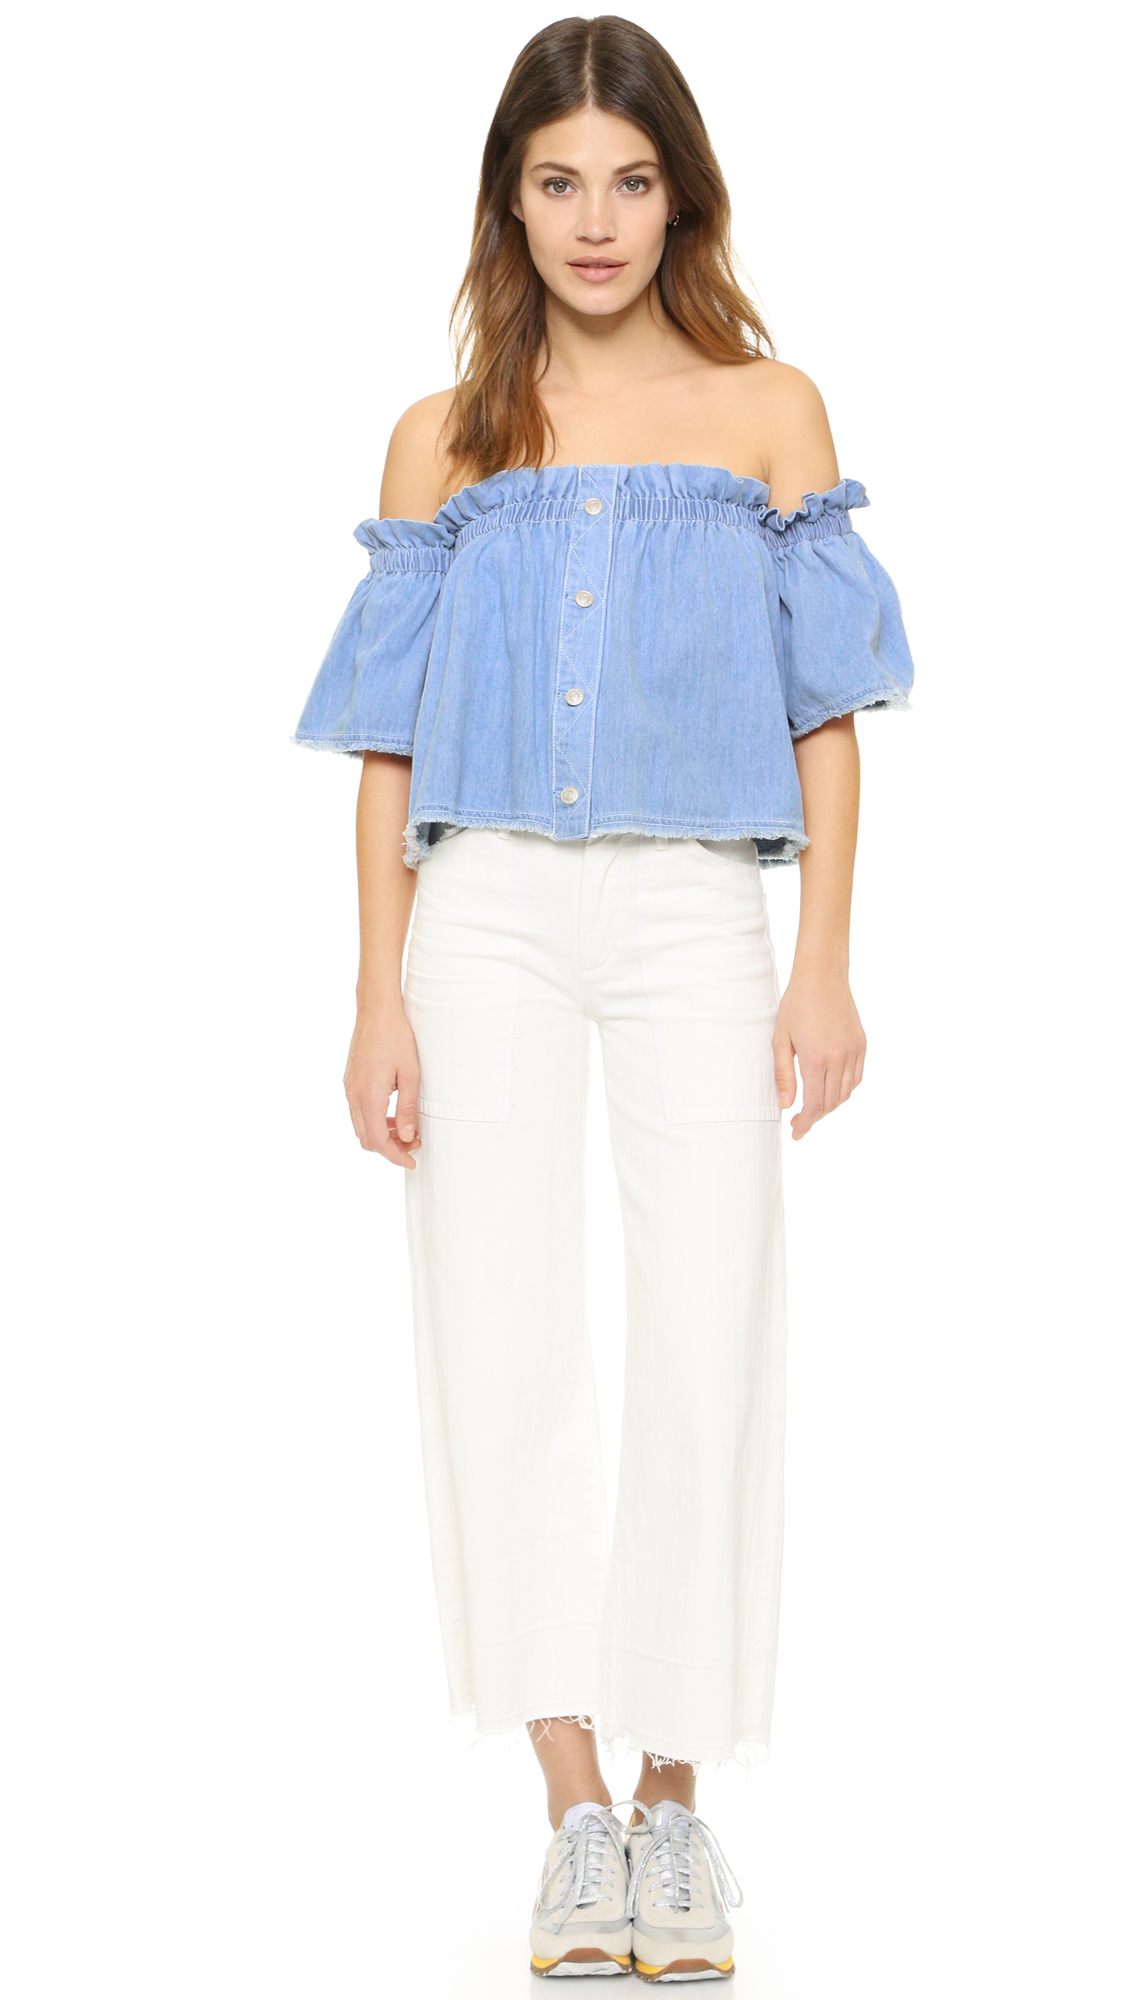 c963479e42b Gallery. Previously sold at  Shopbop · Women s One Shoulder Tops ...